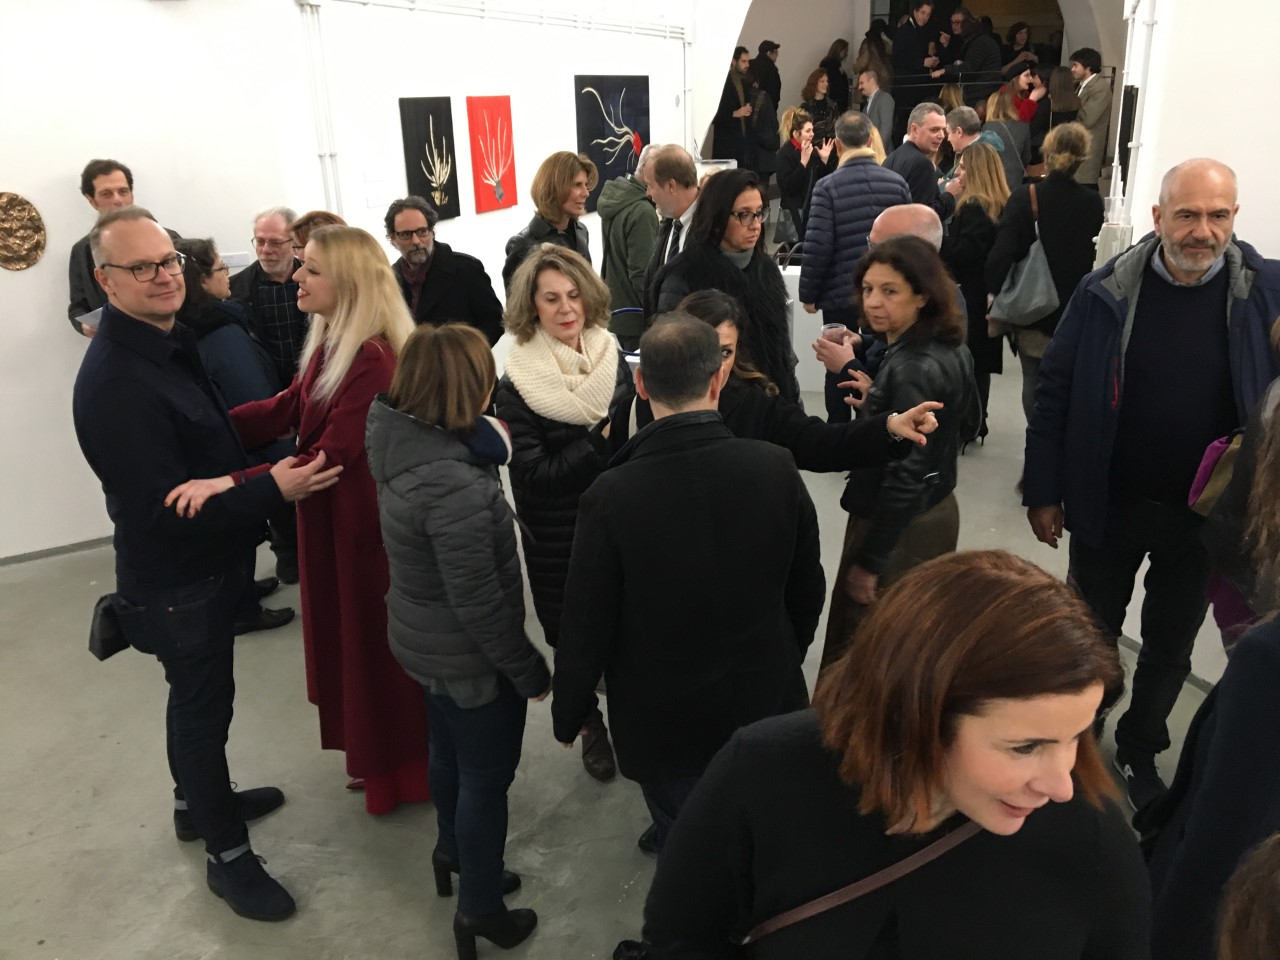 20 Divenire group show curated by Giuditta Elettra Lavinia Nidiaci